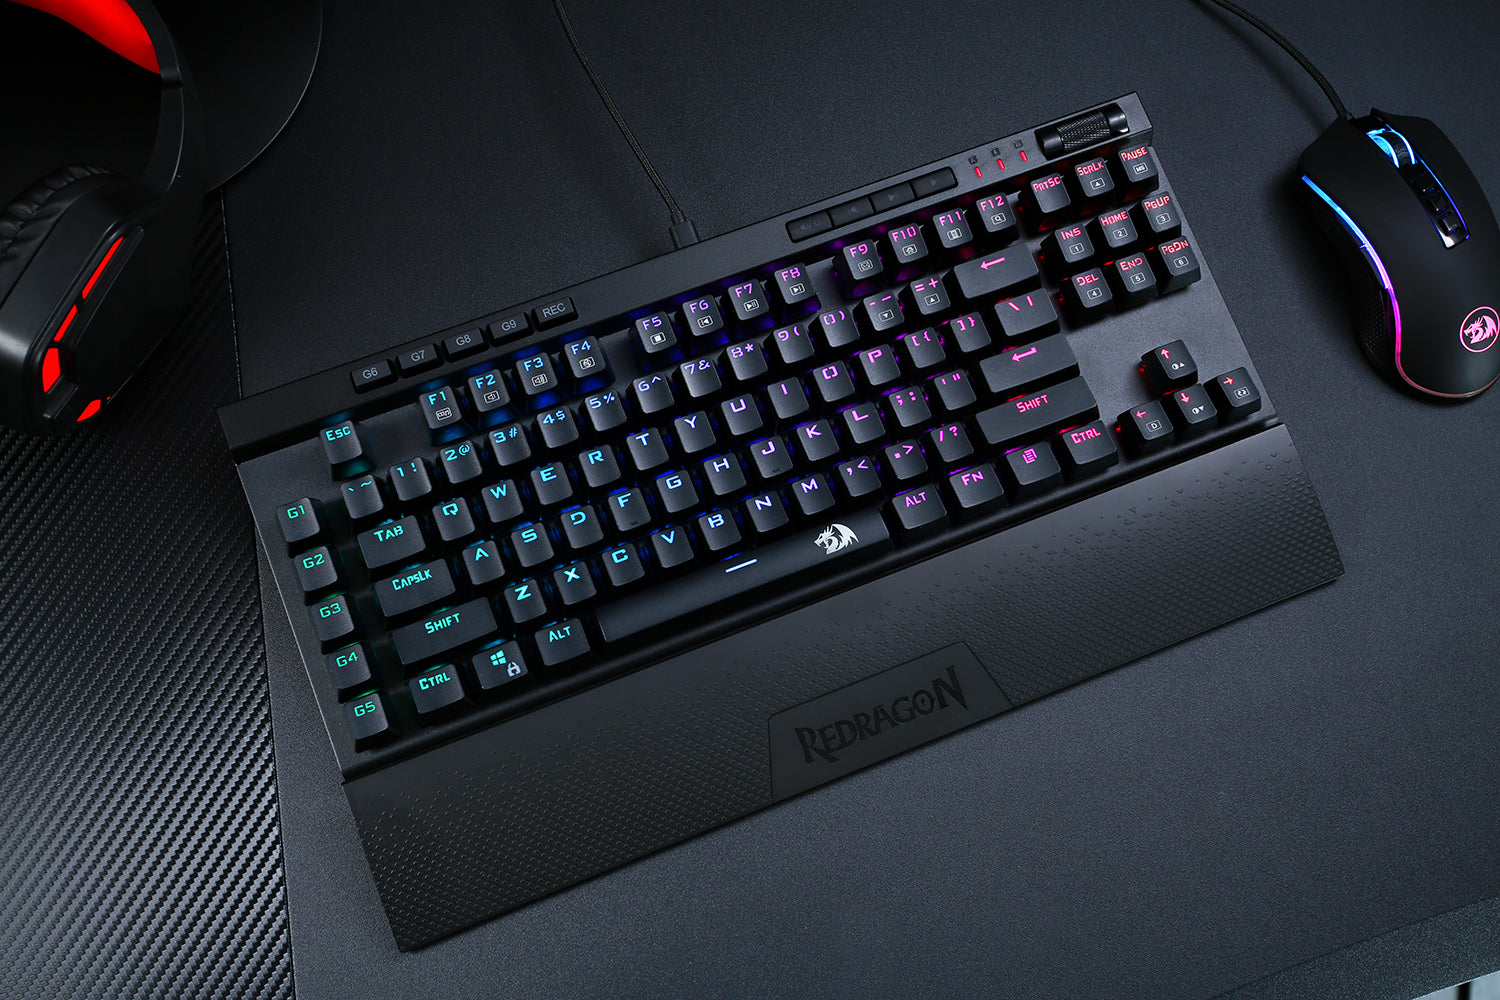 redragon tkl gaming keyboard Rgb keyboard